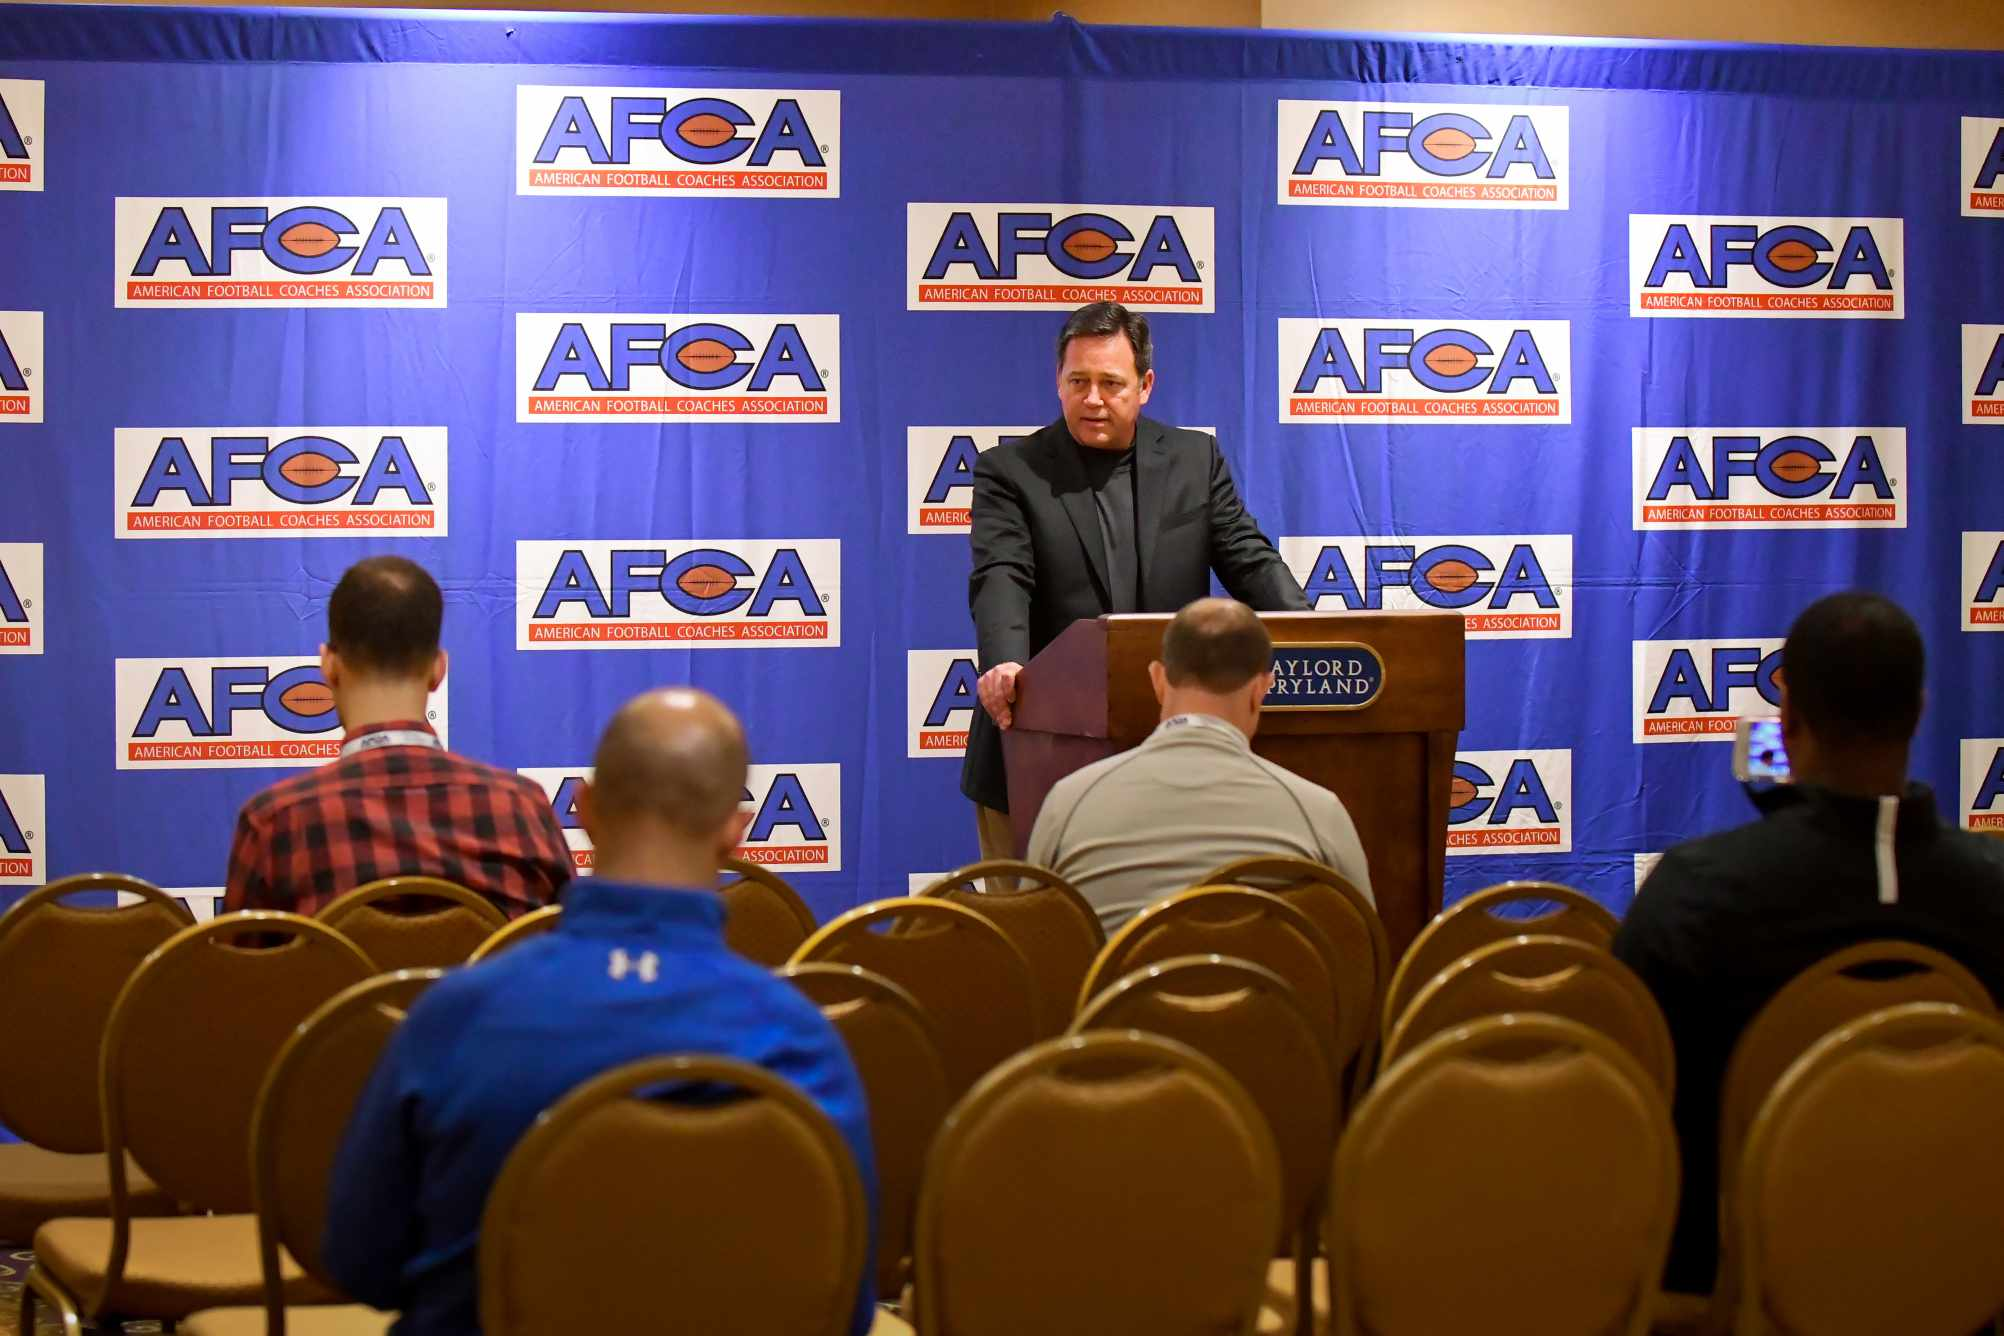 AFCA Statements After Coaches Meeting